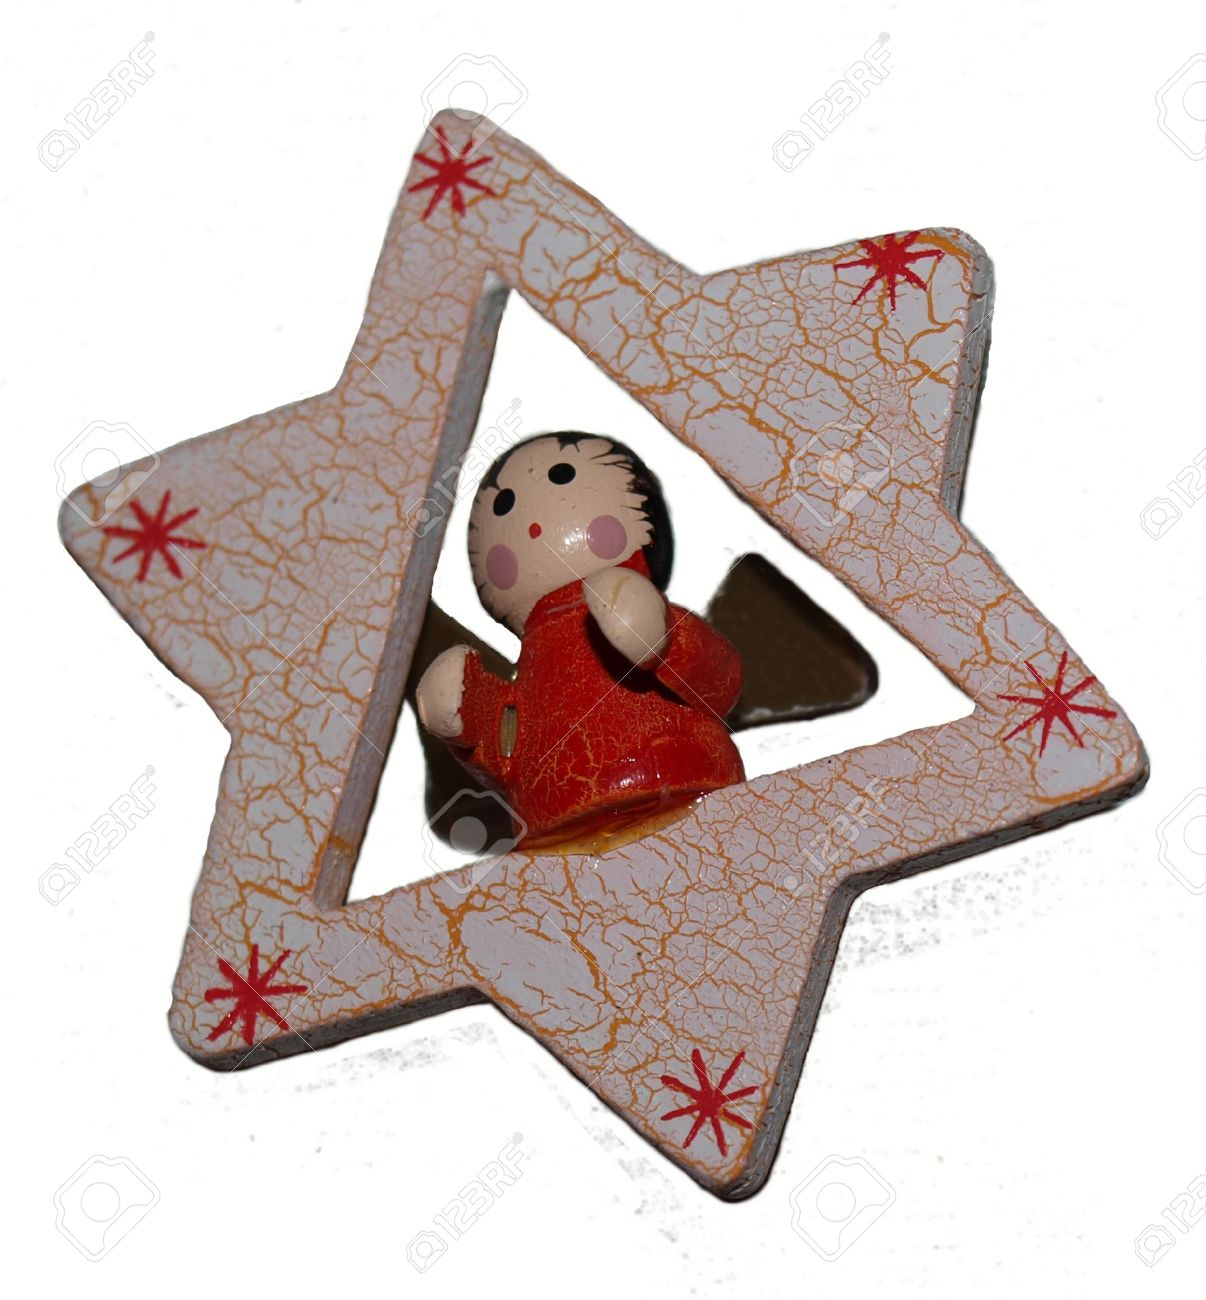 Christmas Decorations, Star, Angel, Wooden, Christmas Toy, Handmade,  Painting,